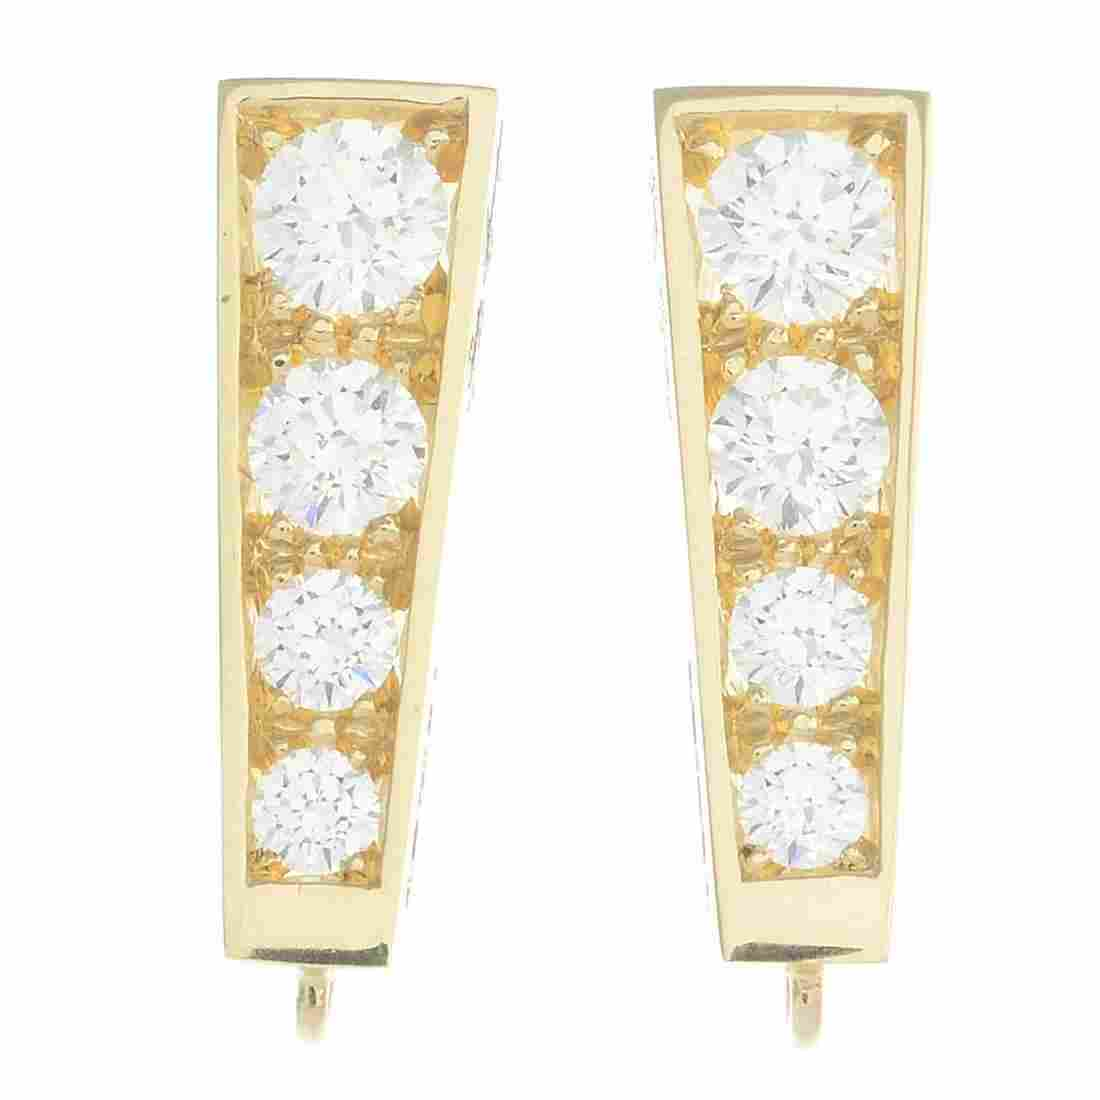 A pair of 18ct gold diamond and gem-set interchangeable